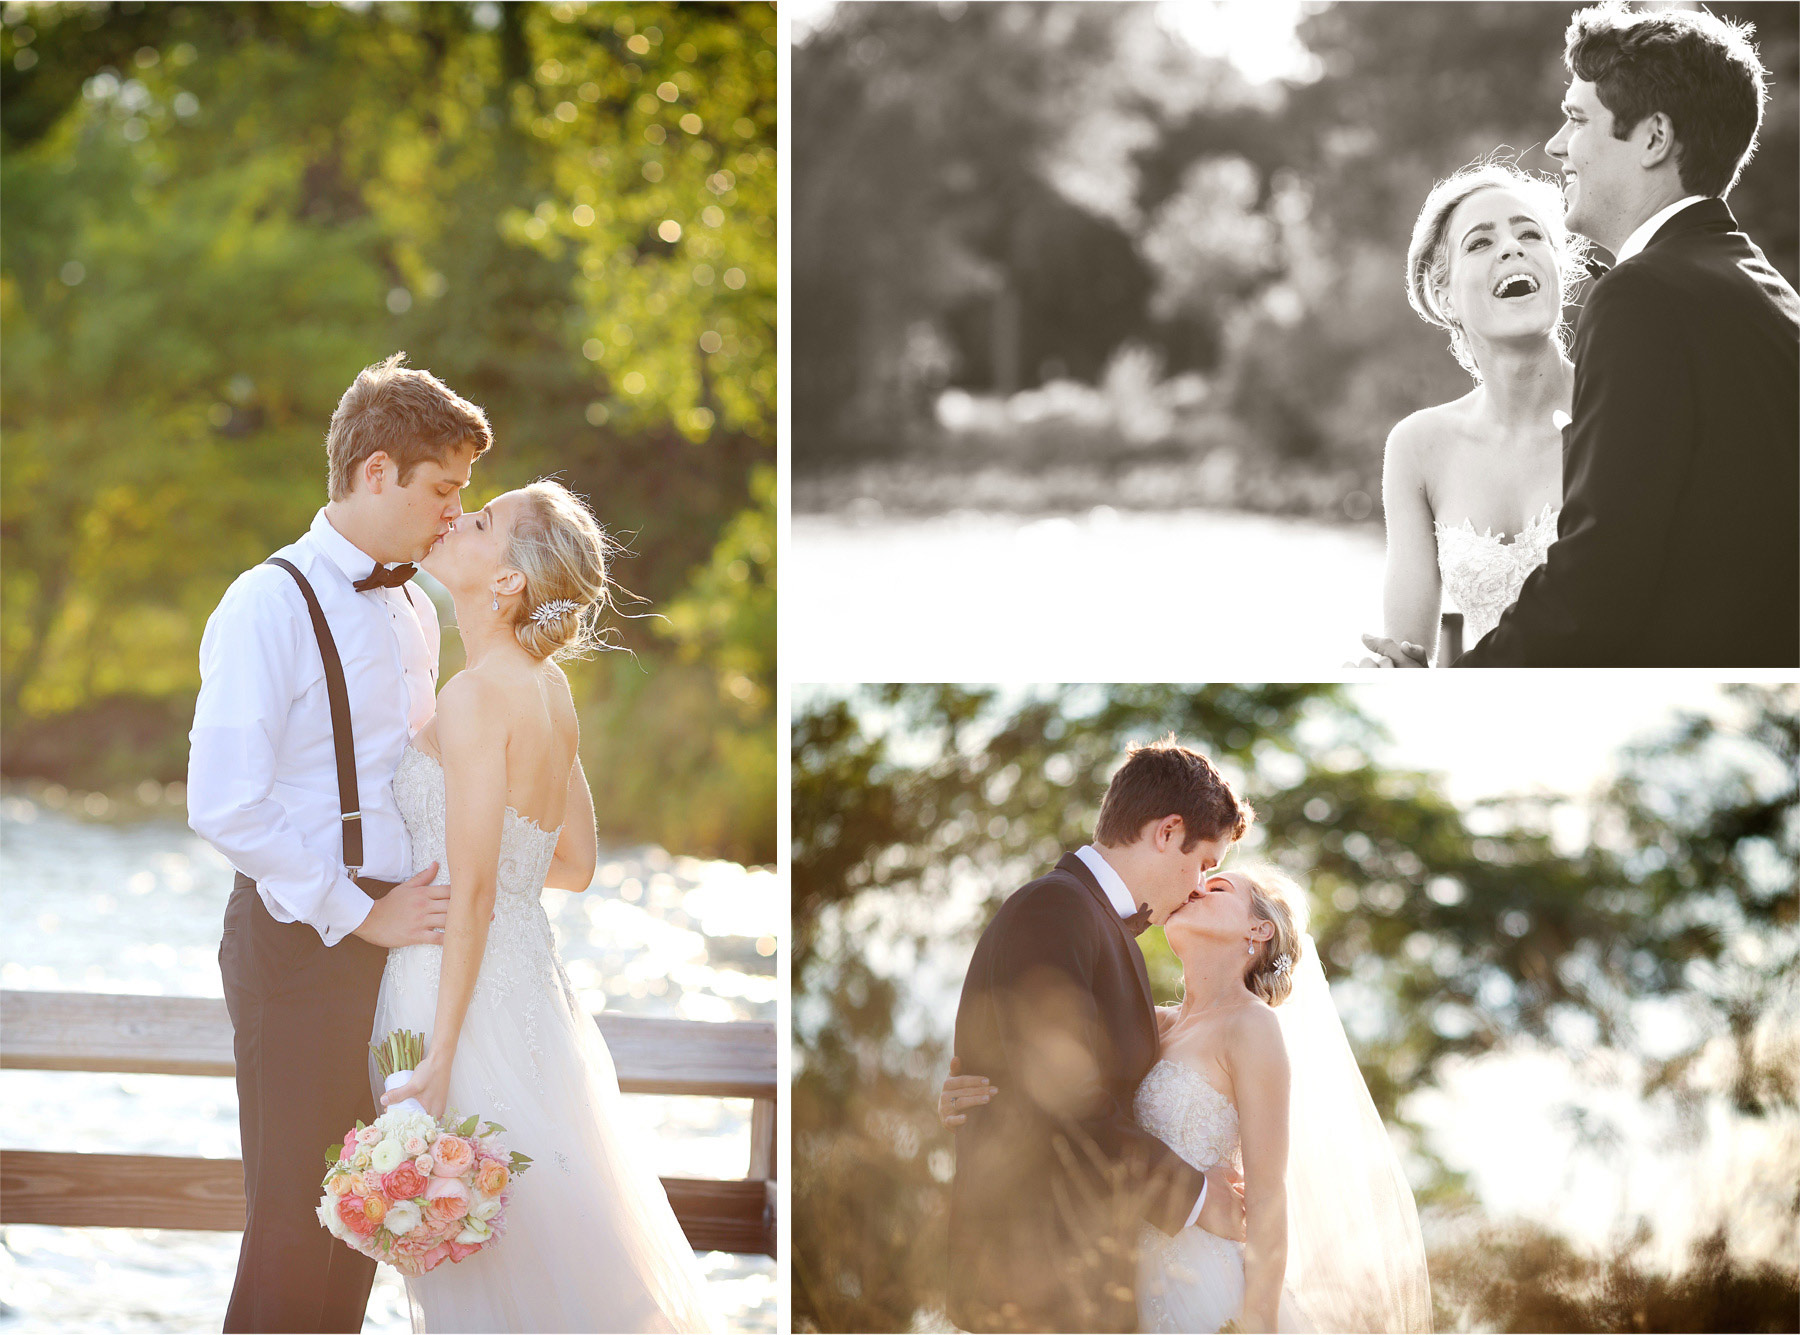 20-Minneapolis-Minnesota-Wedding-Photographer-by-Andrew-Vick-Photography-Summer-Lake-Calhoun-Bride-Groom-Kiss-Flowers-Laughter-Vintage-Black-and-White-Michelle-and-Kevin.jpg